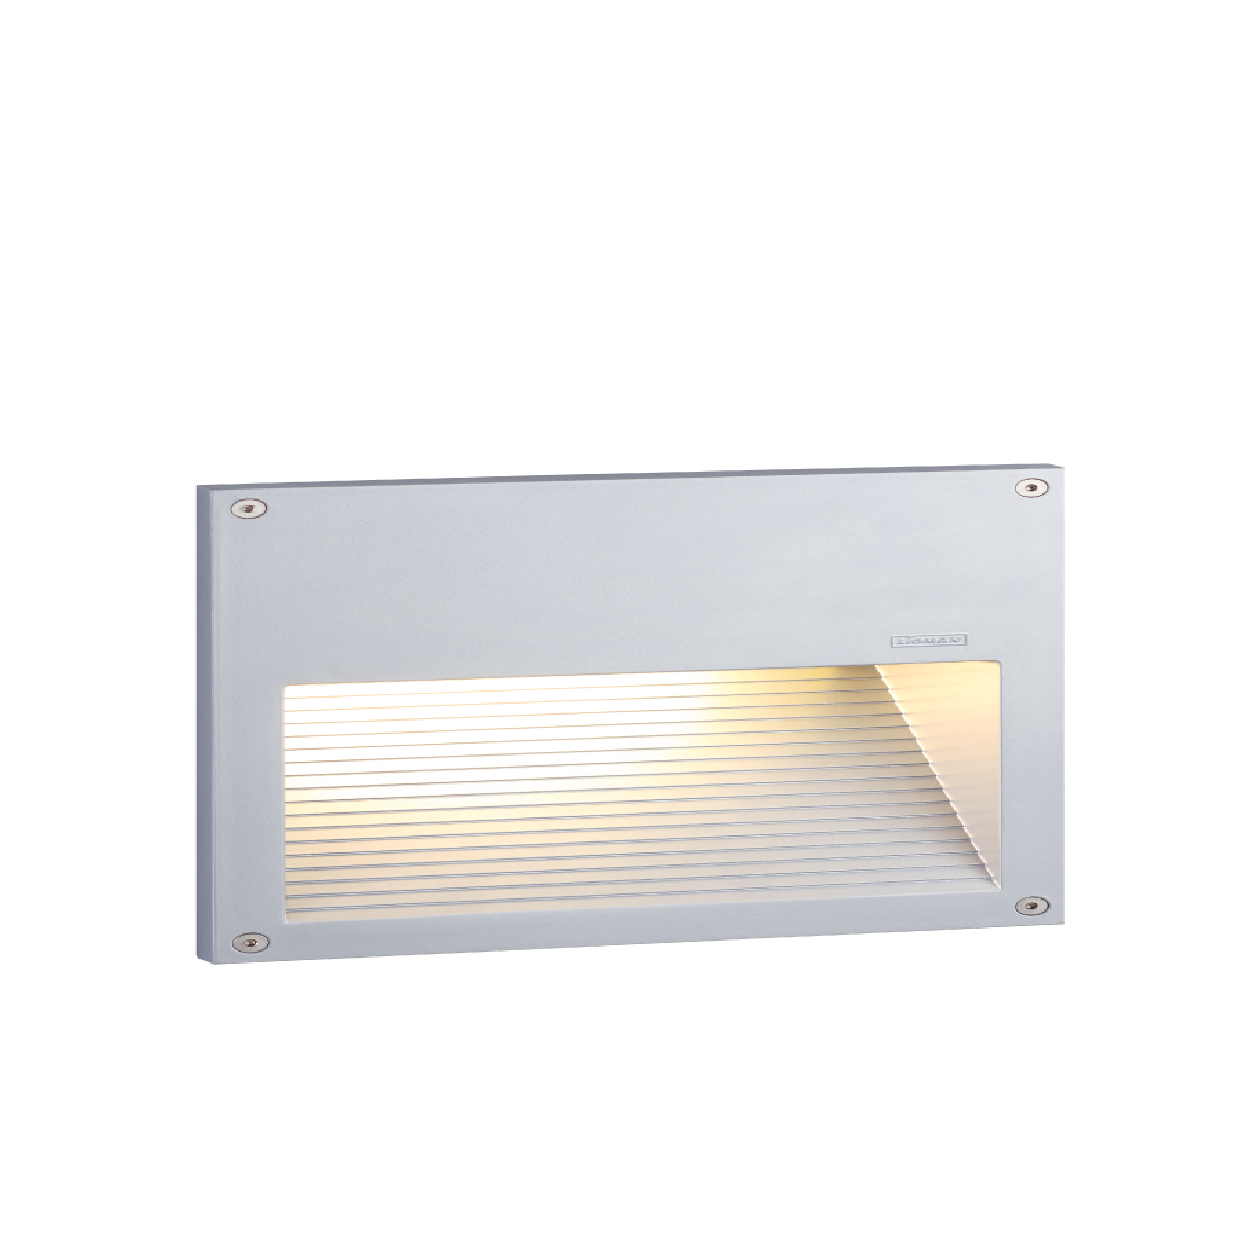 Rado 2 recessed led w27 w30 w40 up to 85 lumens recessed rado 2 recessed led w27 w30 w40 up to 85 lumens lighting productsoutdoor lightinglamp lightlight fixtureslight fittingsexterior arubaitofo Choice Image